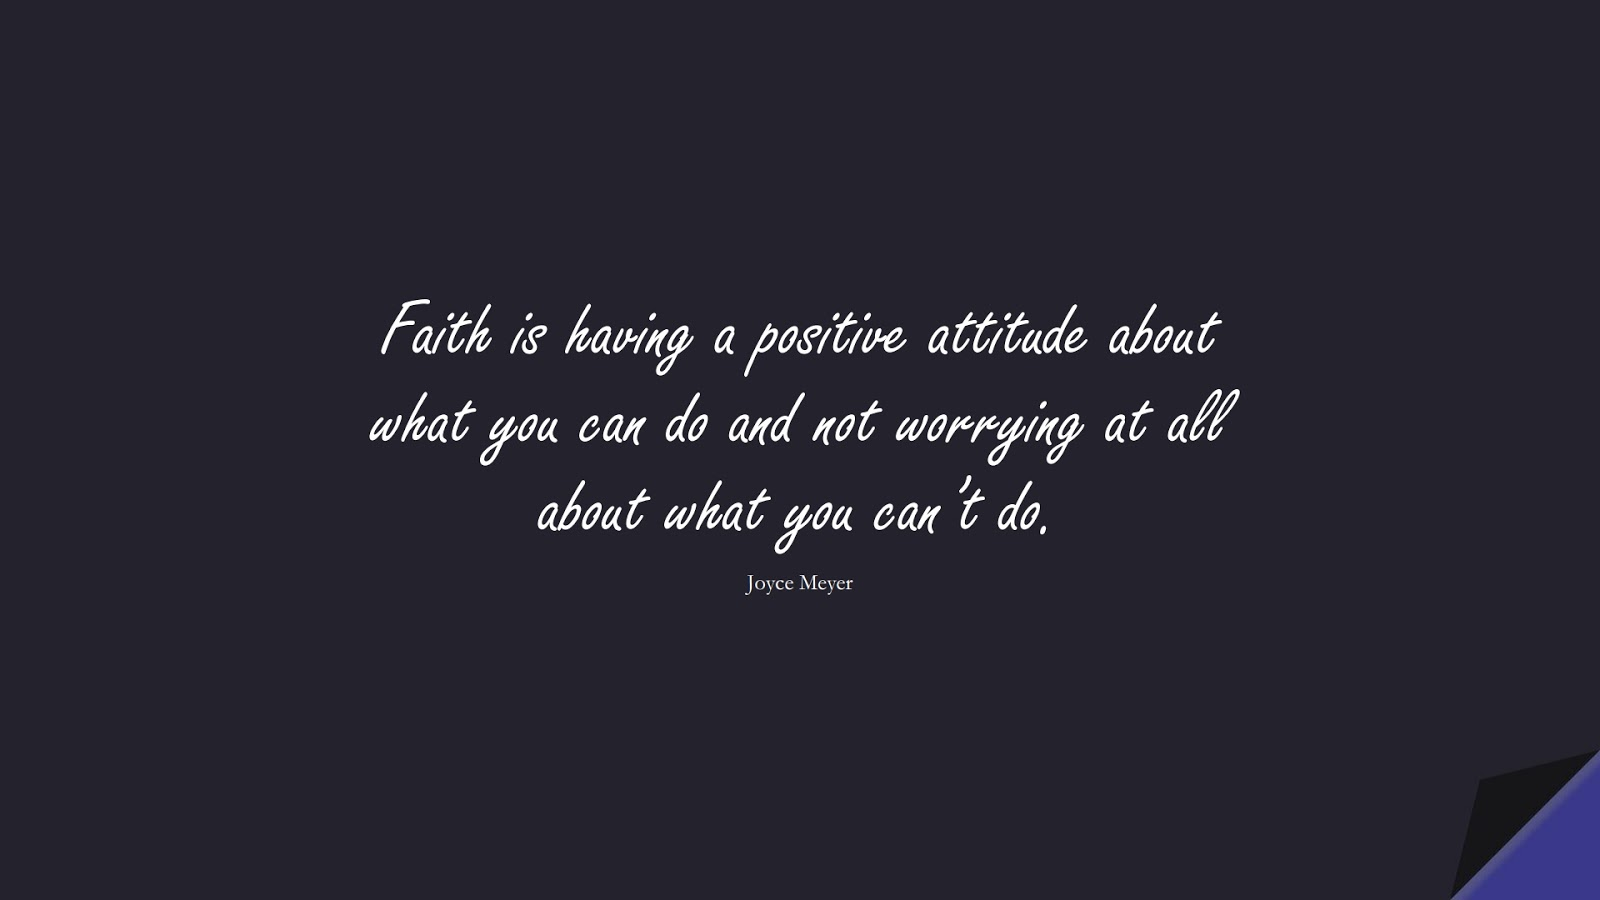 Faith is having a positive attitude about what you can do and not worrying at all about what you can't do. (Joyce Meyer);  #PositiveQuotes